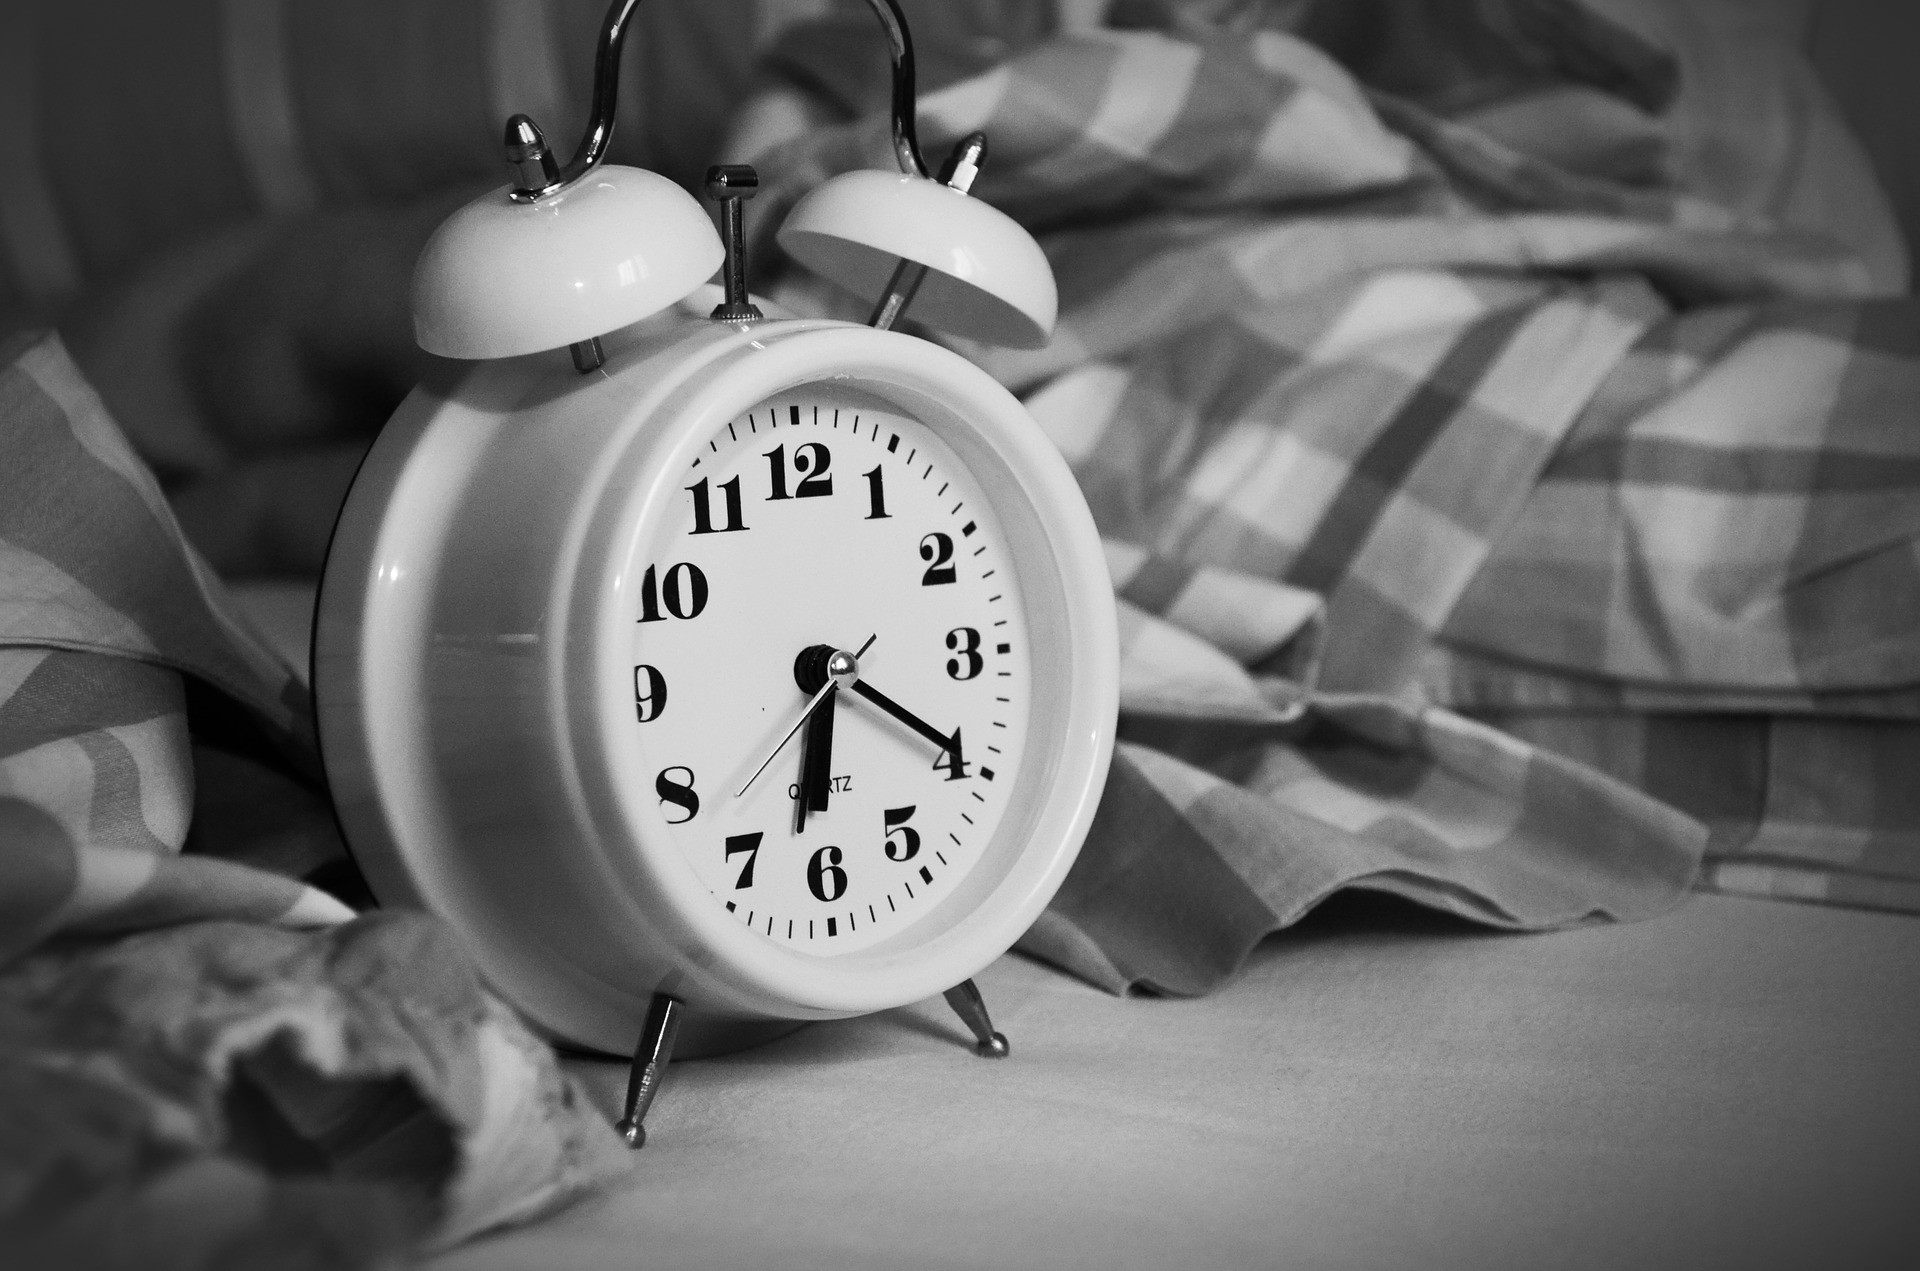 Write a haiku about waking up in the morning.